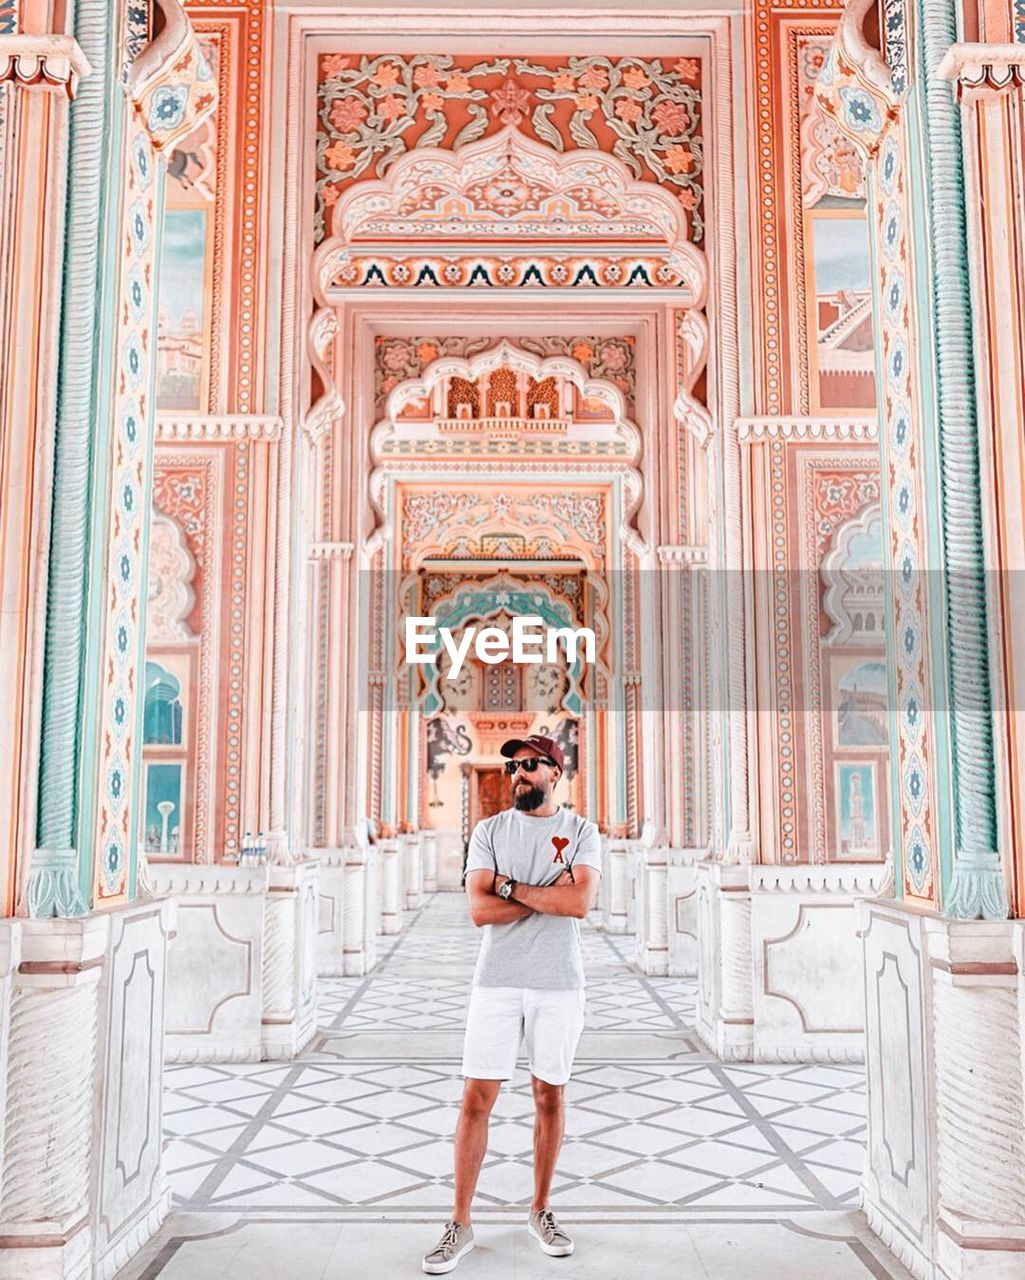 architecture, one person, full length, front view, real people, built structure, standing, building, young adult, day, travel destinations, religion, lifestyles, tourism, portrait, leisure activity, the past, looking at camera, place of worship, architectural column, ornate, luxury